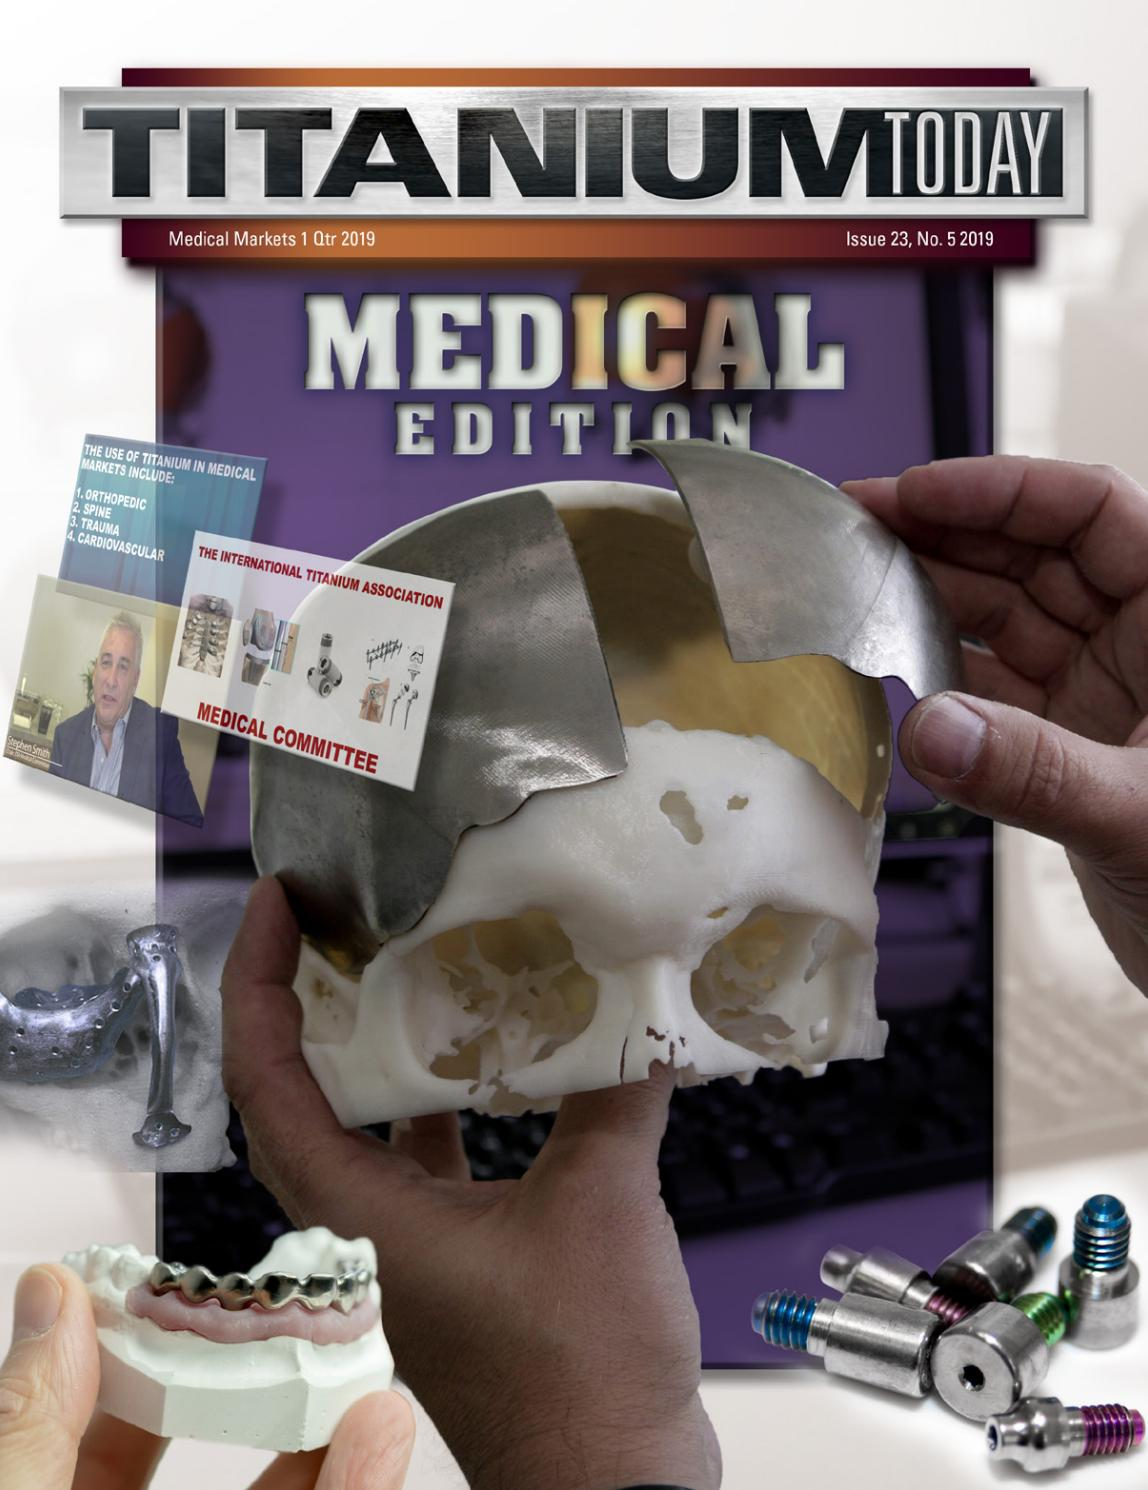 TITANIUM TODAY - Medical Edition 2019 by TITANIUMTODAY - issuu